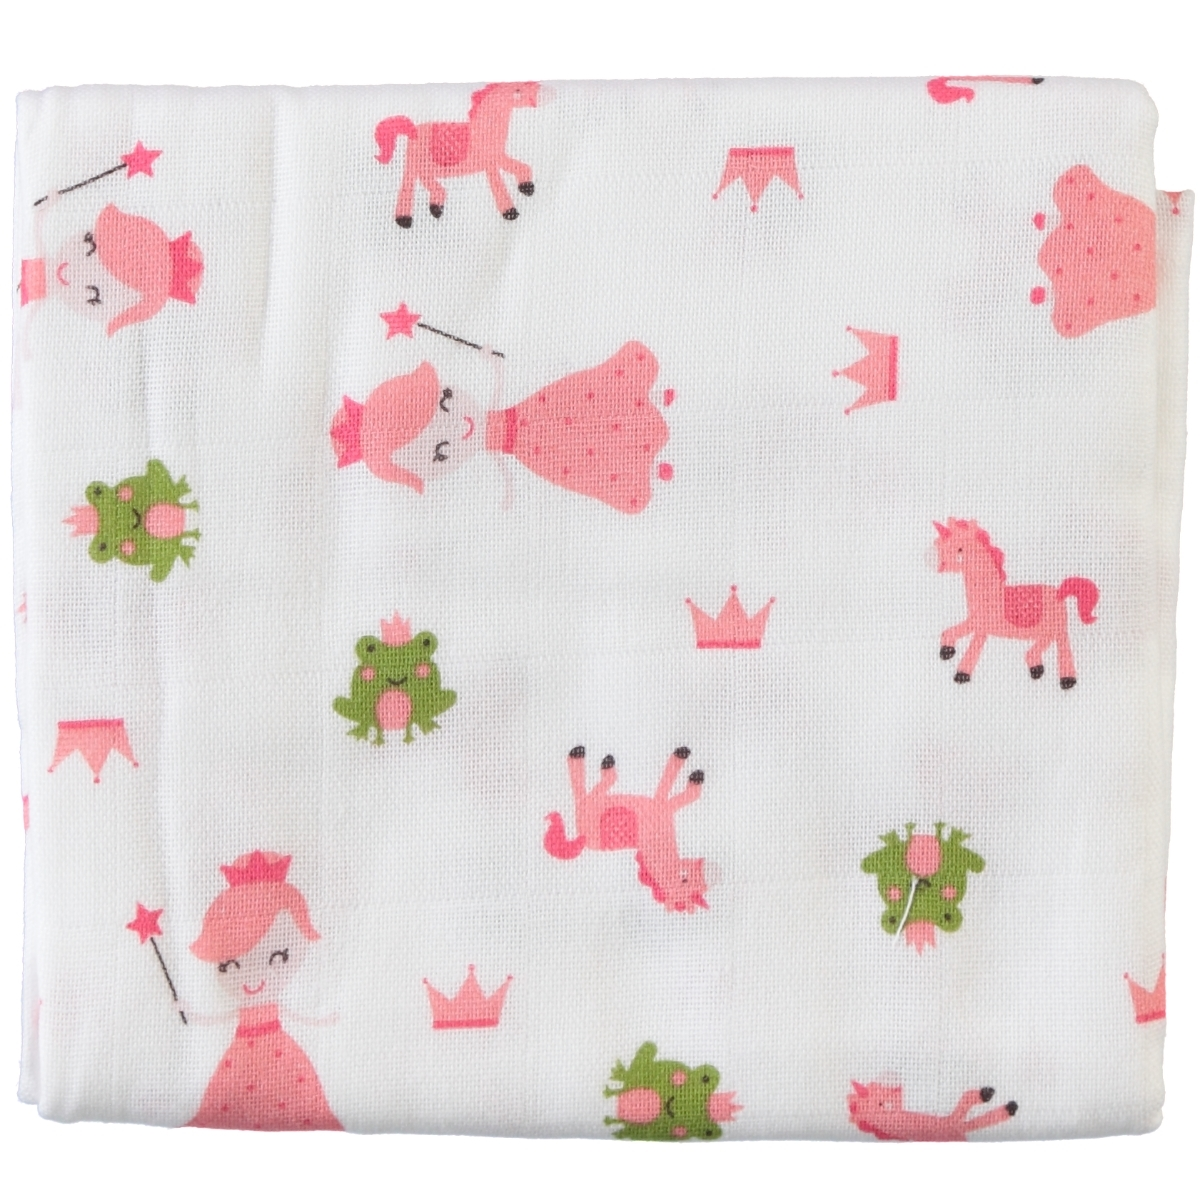 Sevi Bebe Tongue in cheek muslin blanket 90x90cm